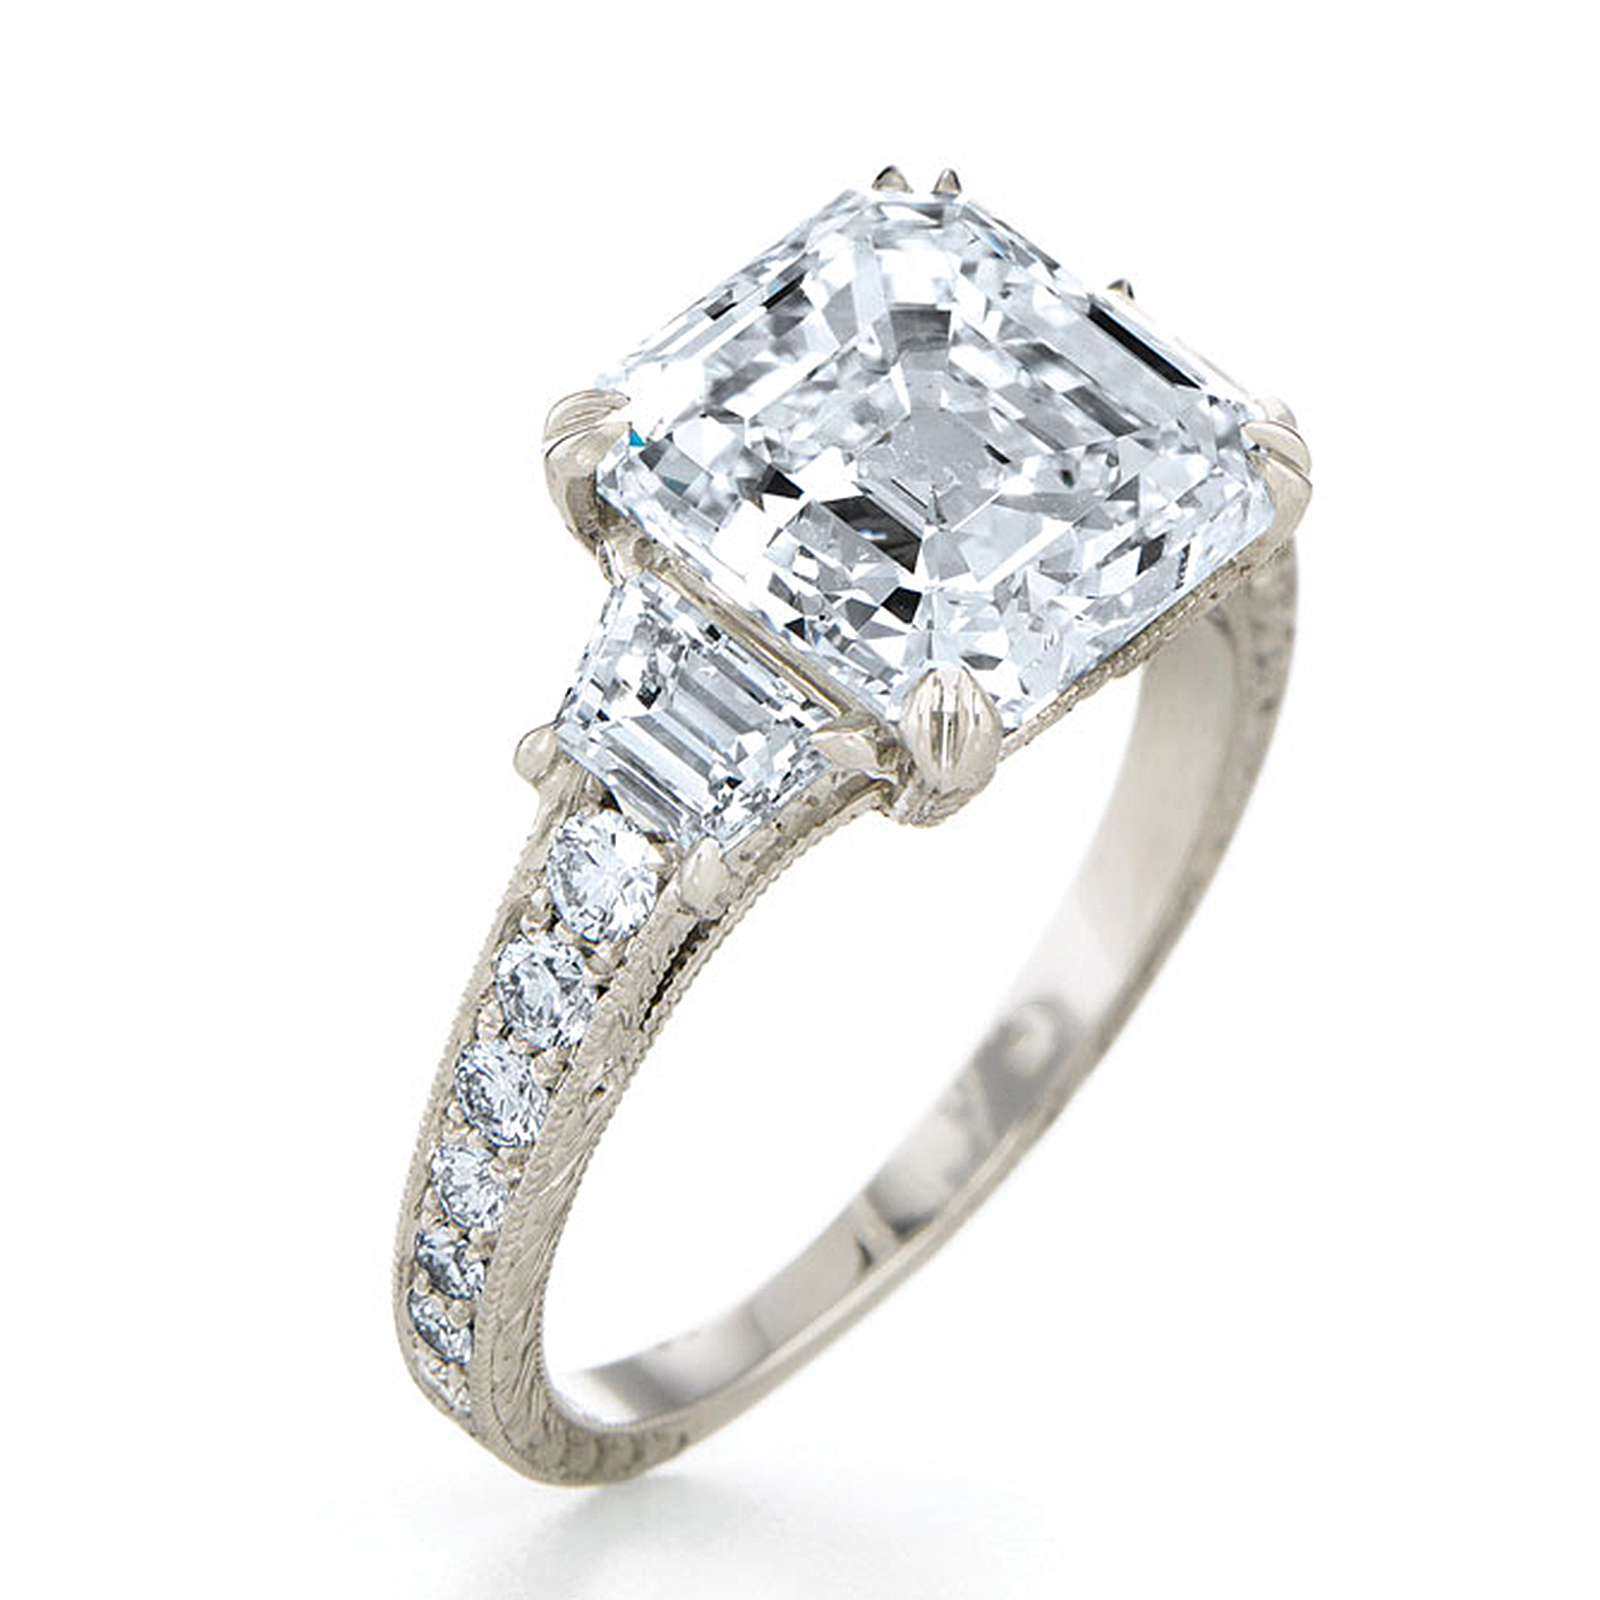 anniversary ring asscher diamonds band mdc cfm asher bands from eternity diamond wedanringsre wedding